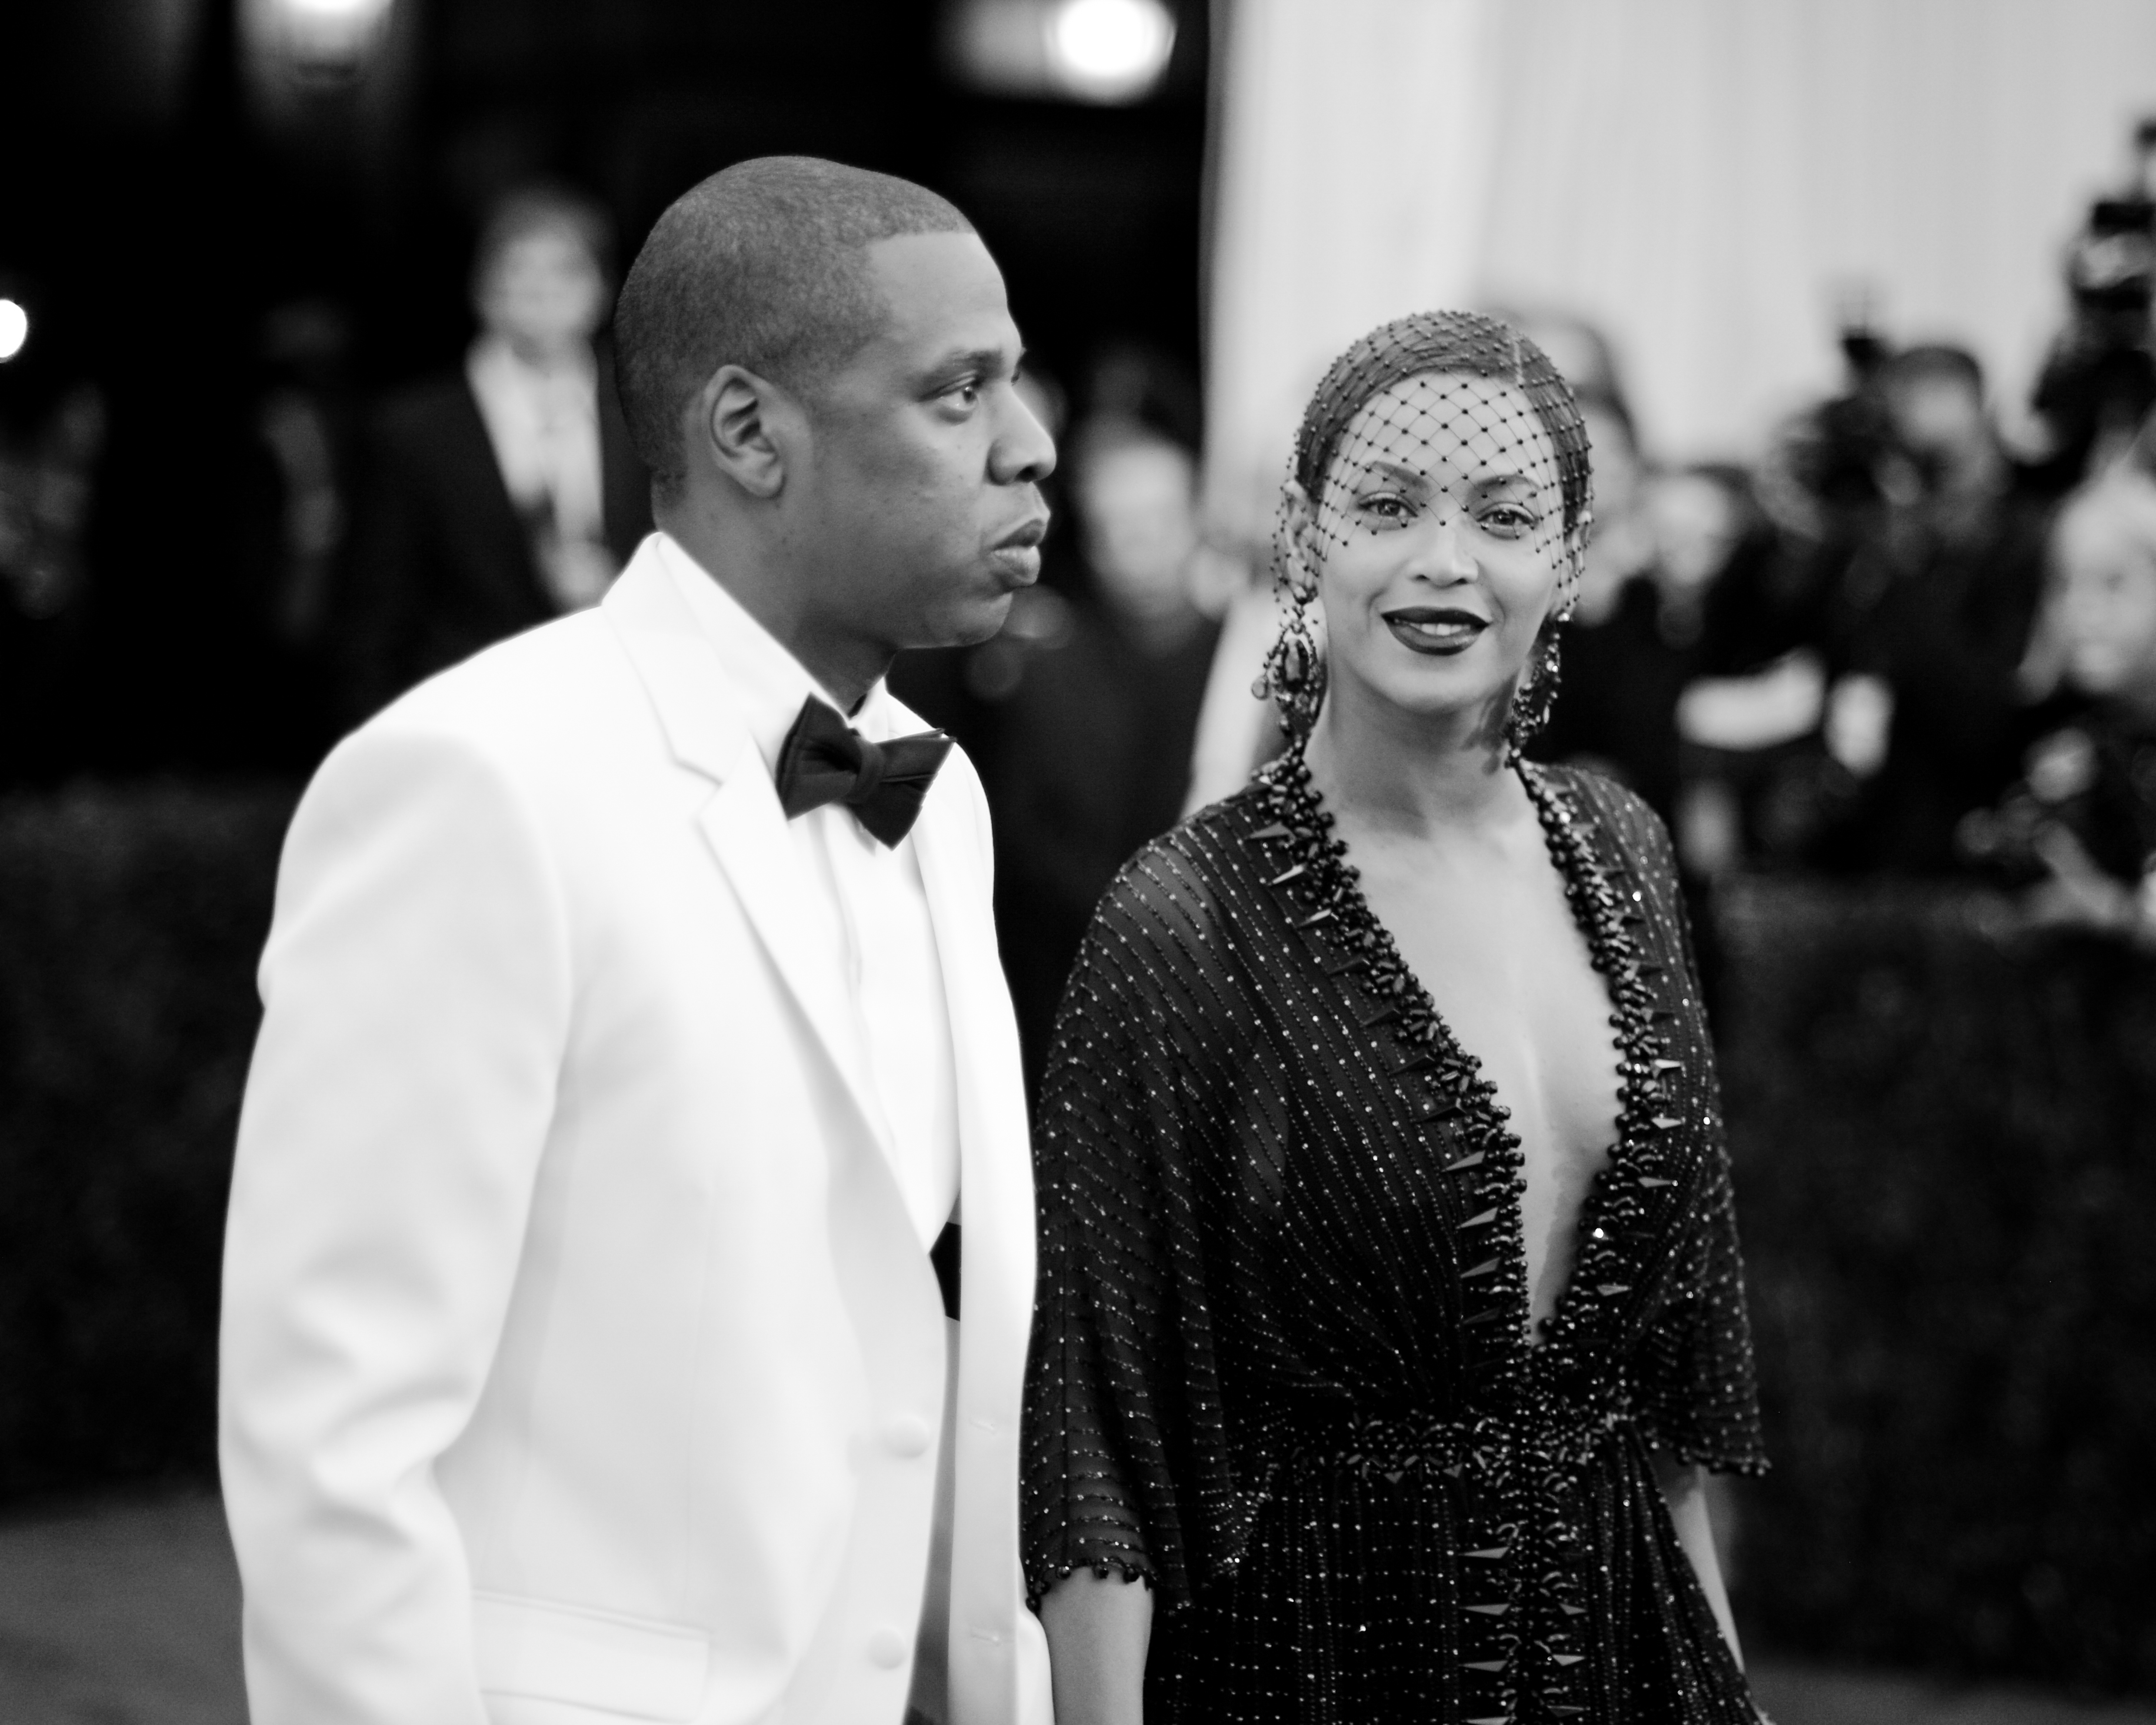 NEW YORK, NY - MAY 05:  [EDITOR'S NOTE: Image has been digitally processed] Jay-Z and Beyonce attend the